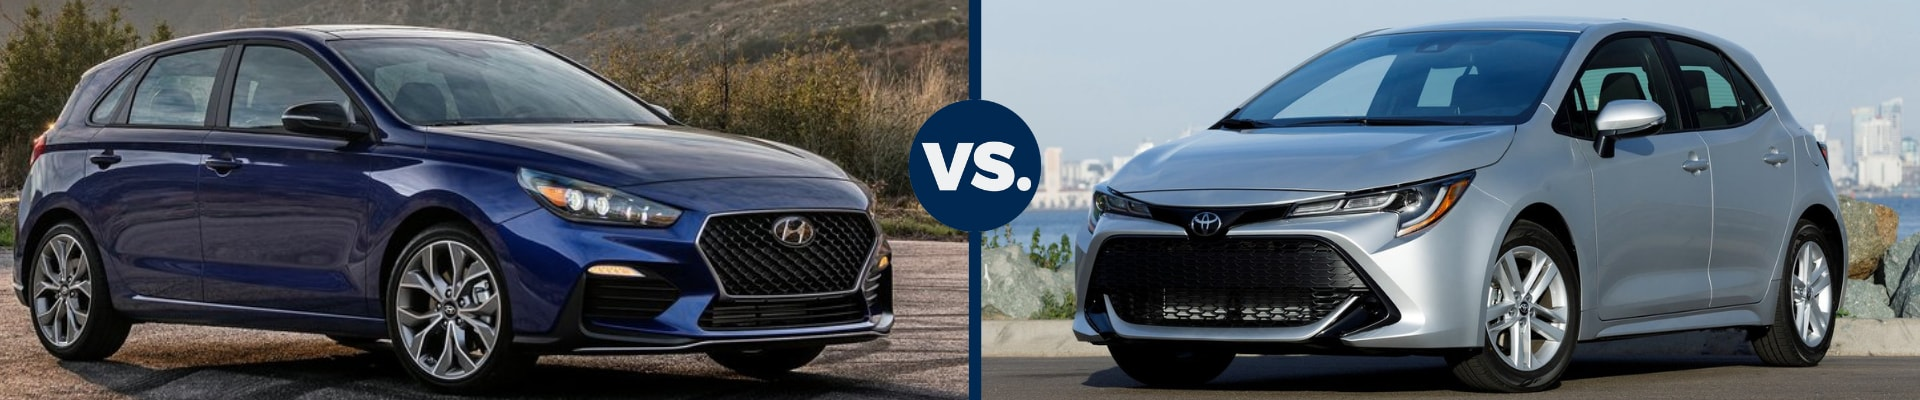 2019 Hyundai Elantra vs 2019 Toyota Corolla exterior comparison head to head